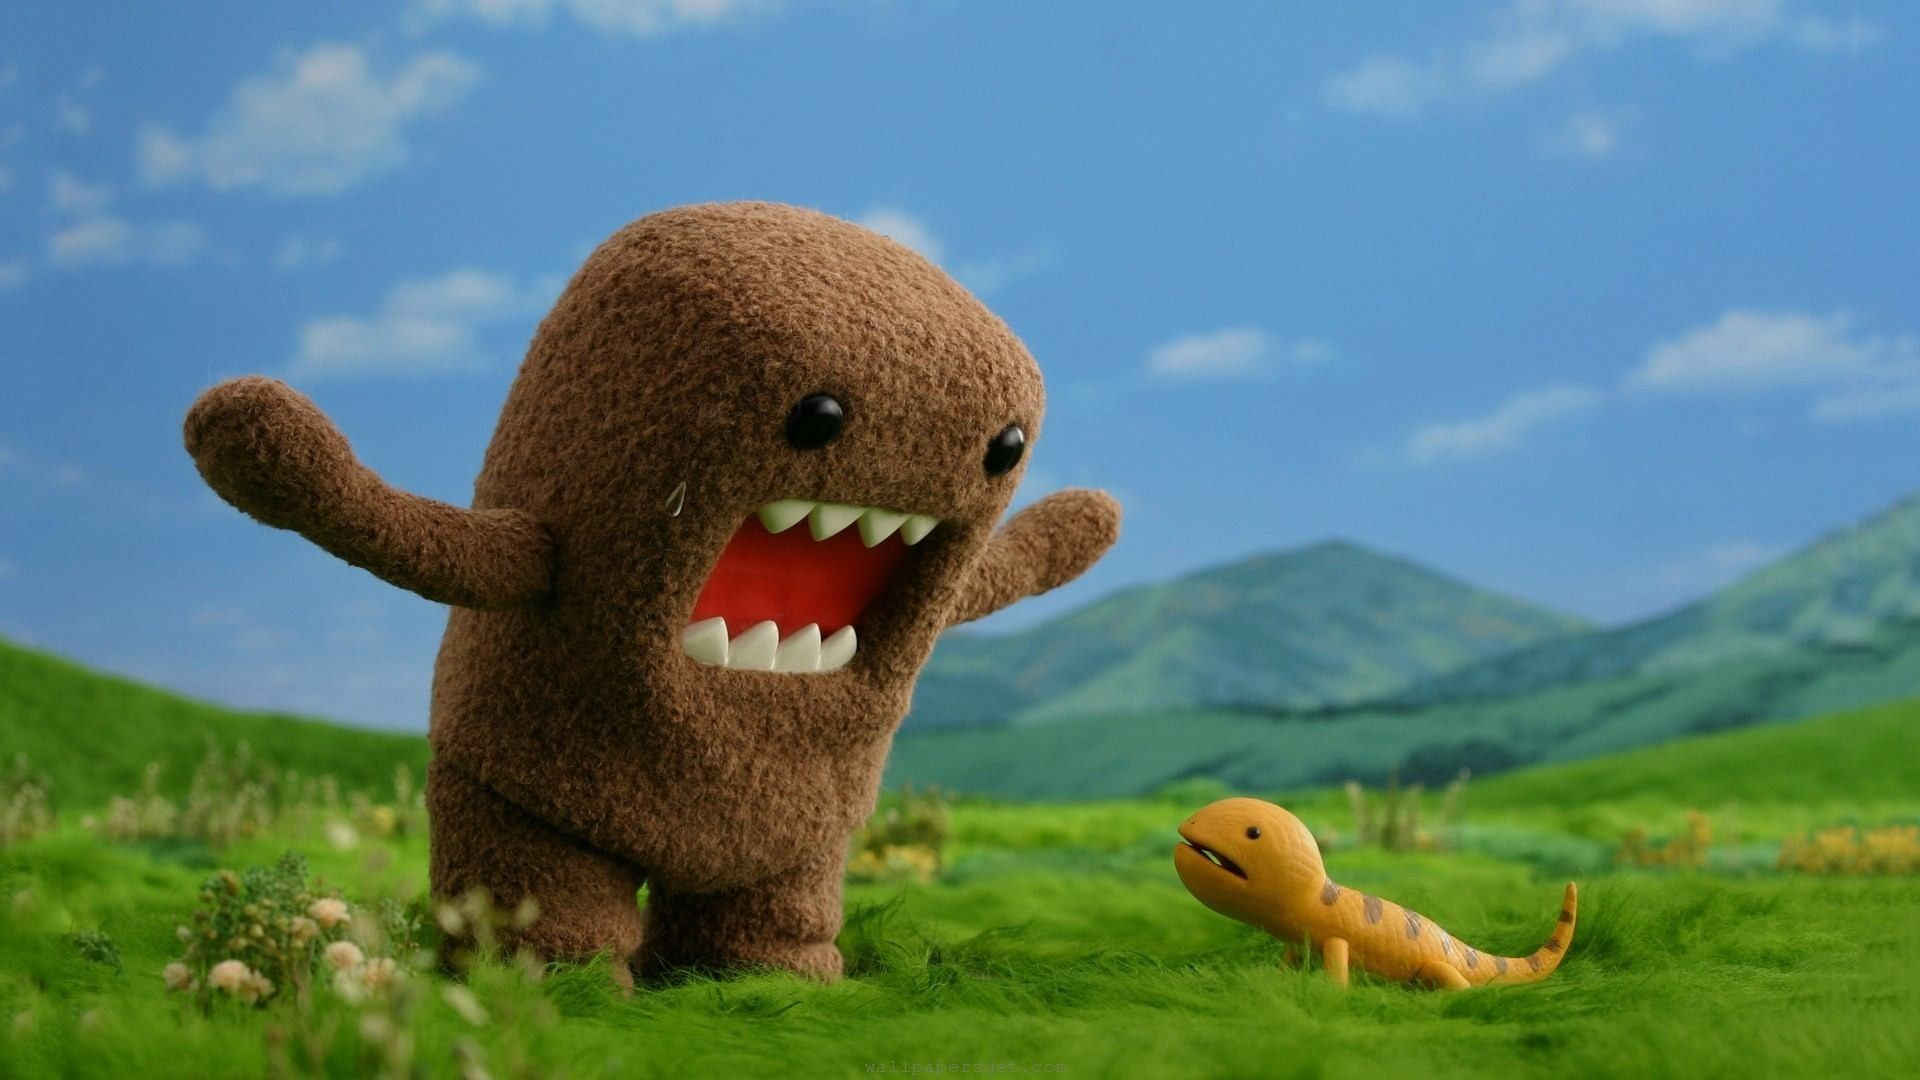 Funny Backgrounds Image - Wallpaper Cave